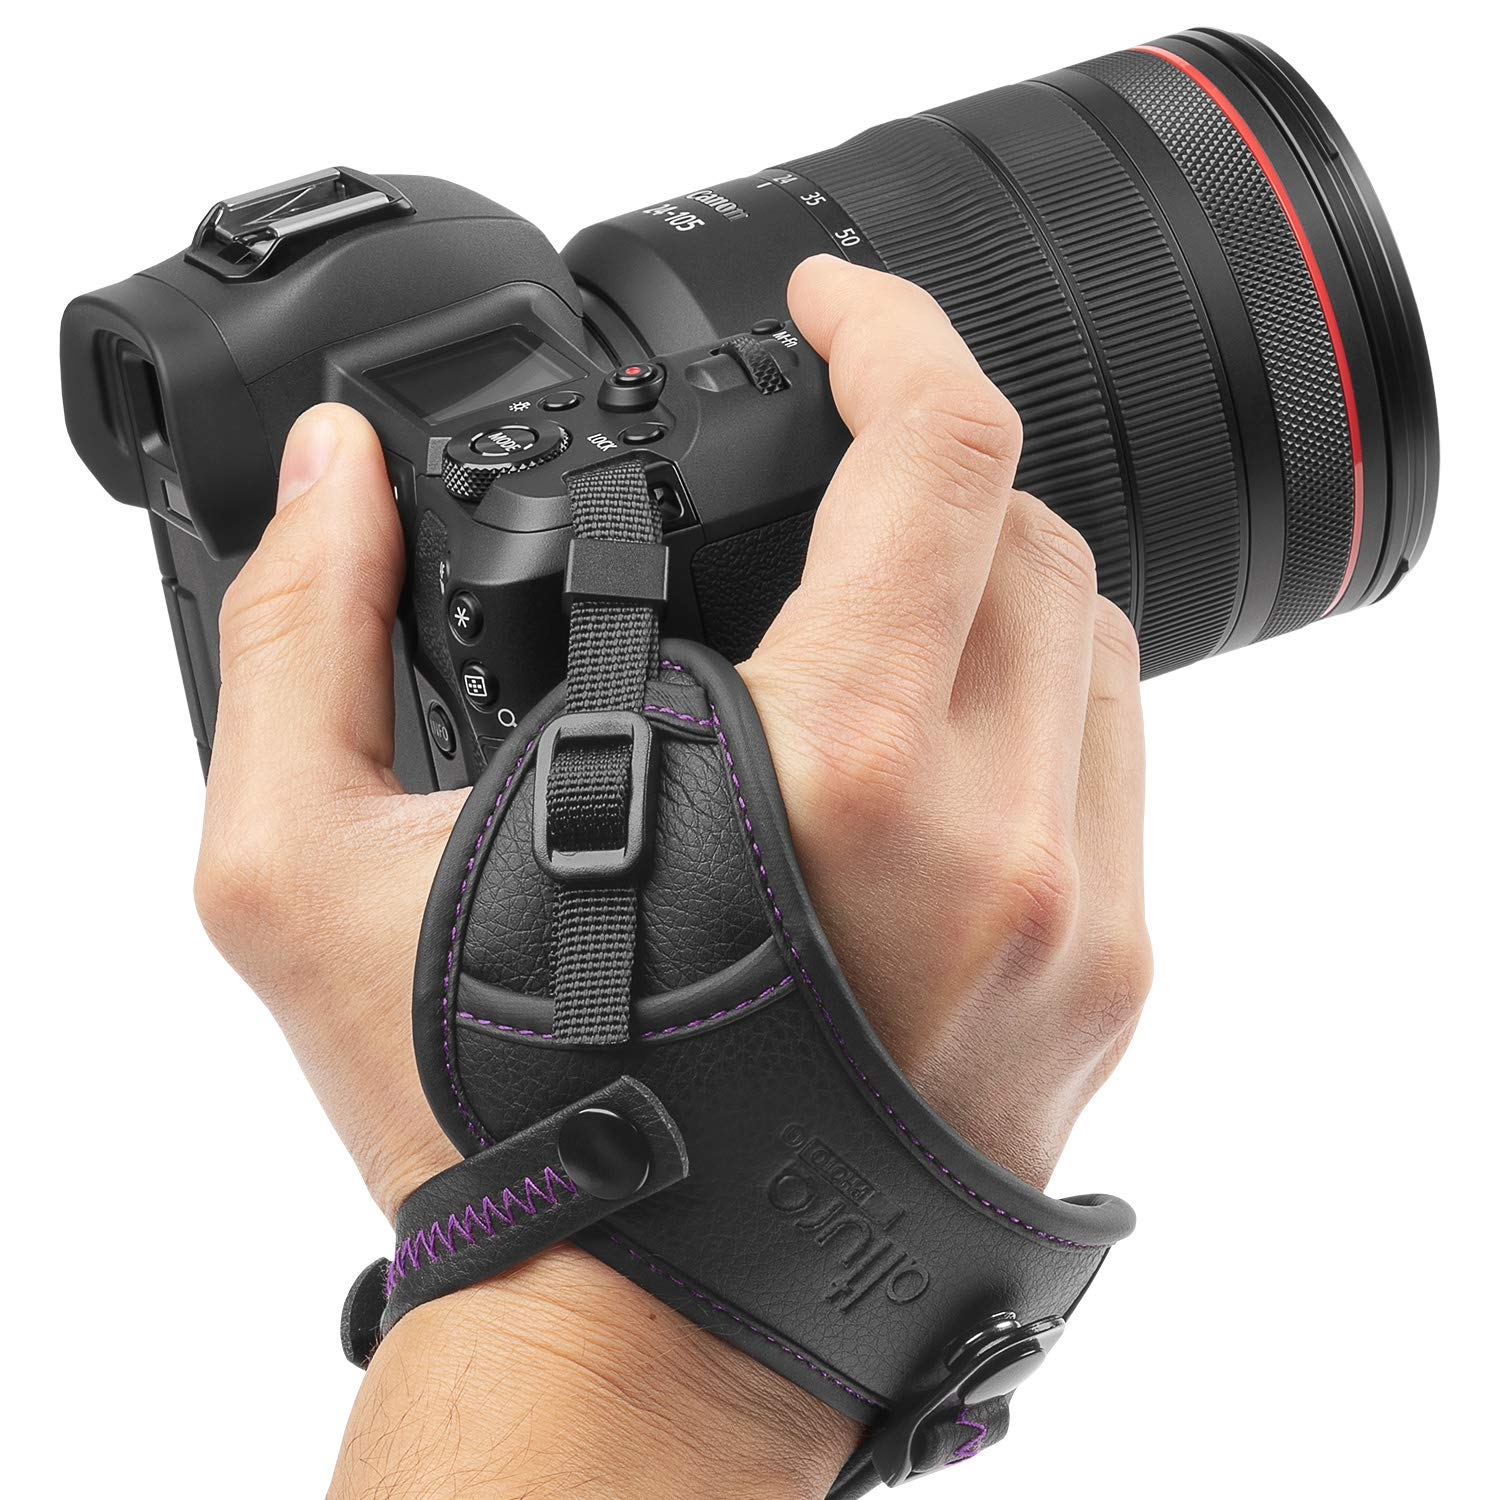 Camera Hand Strap - Rapid Fire Secure Grip Padded Wrist Strap Stabilizer by Altura Photo for DSLR and Mirrorless Cameras by Altura Photo